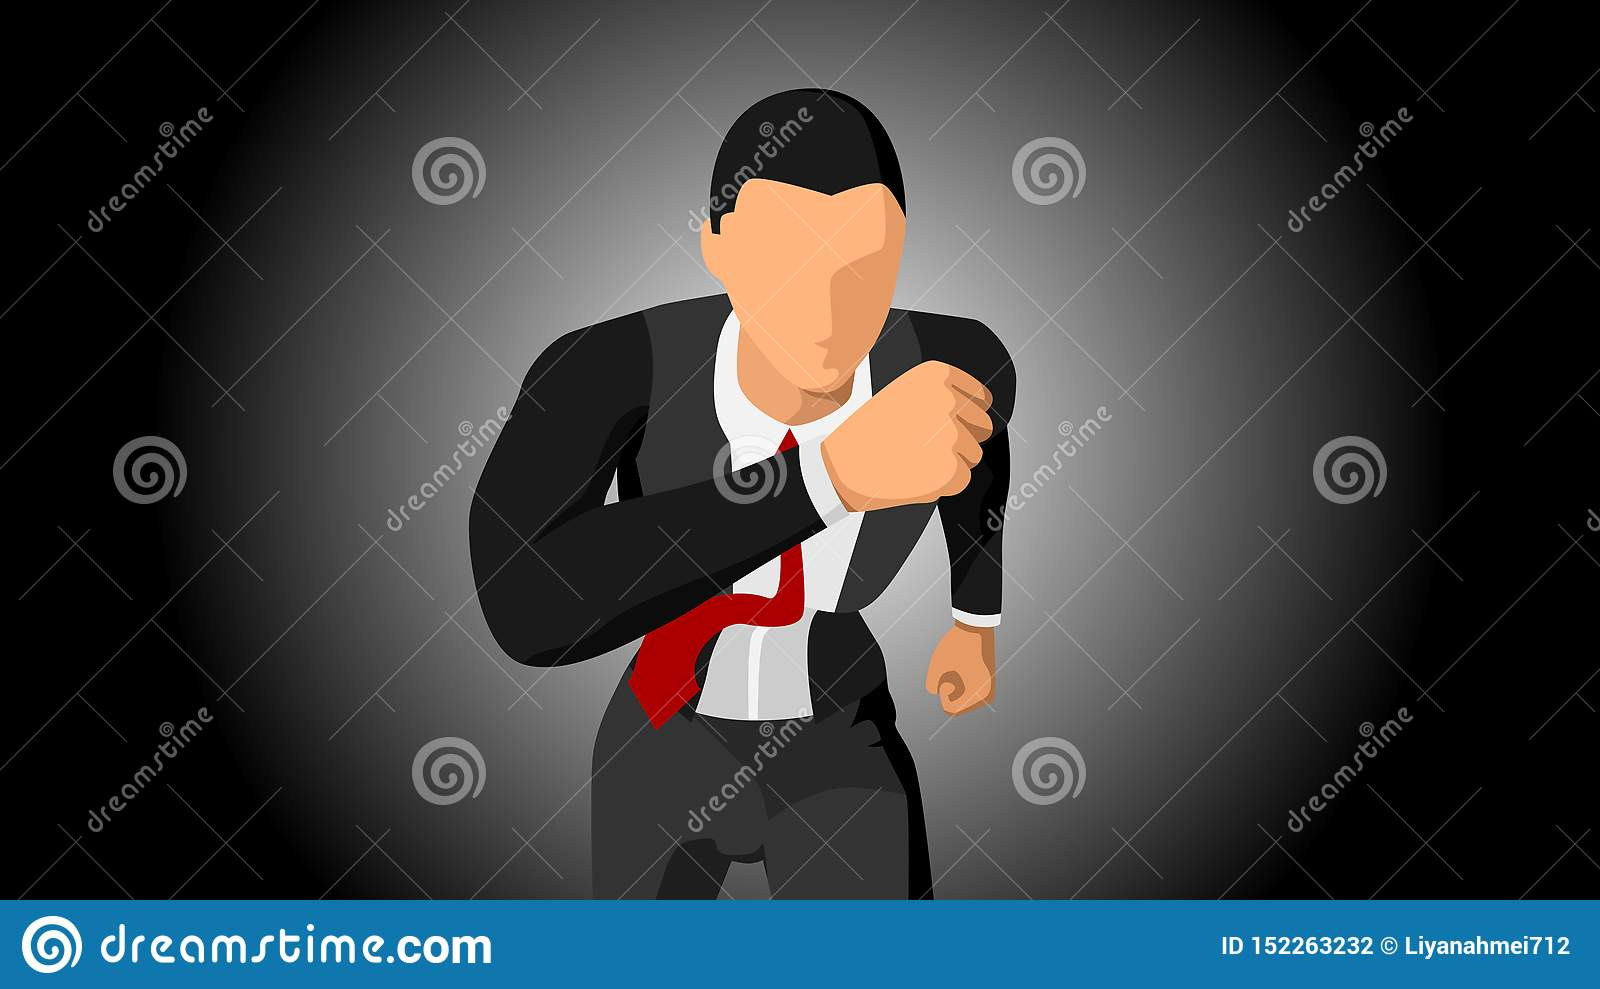 Vector illustration of the character of a businessman running, facing the front. with a dark background. file vector